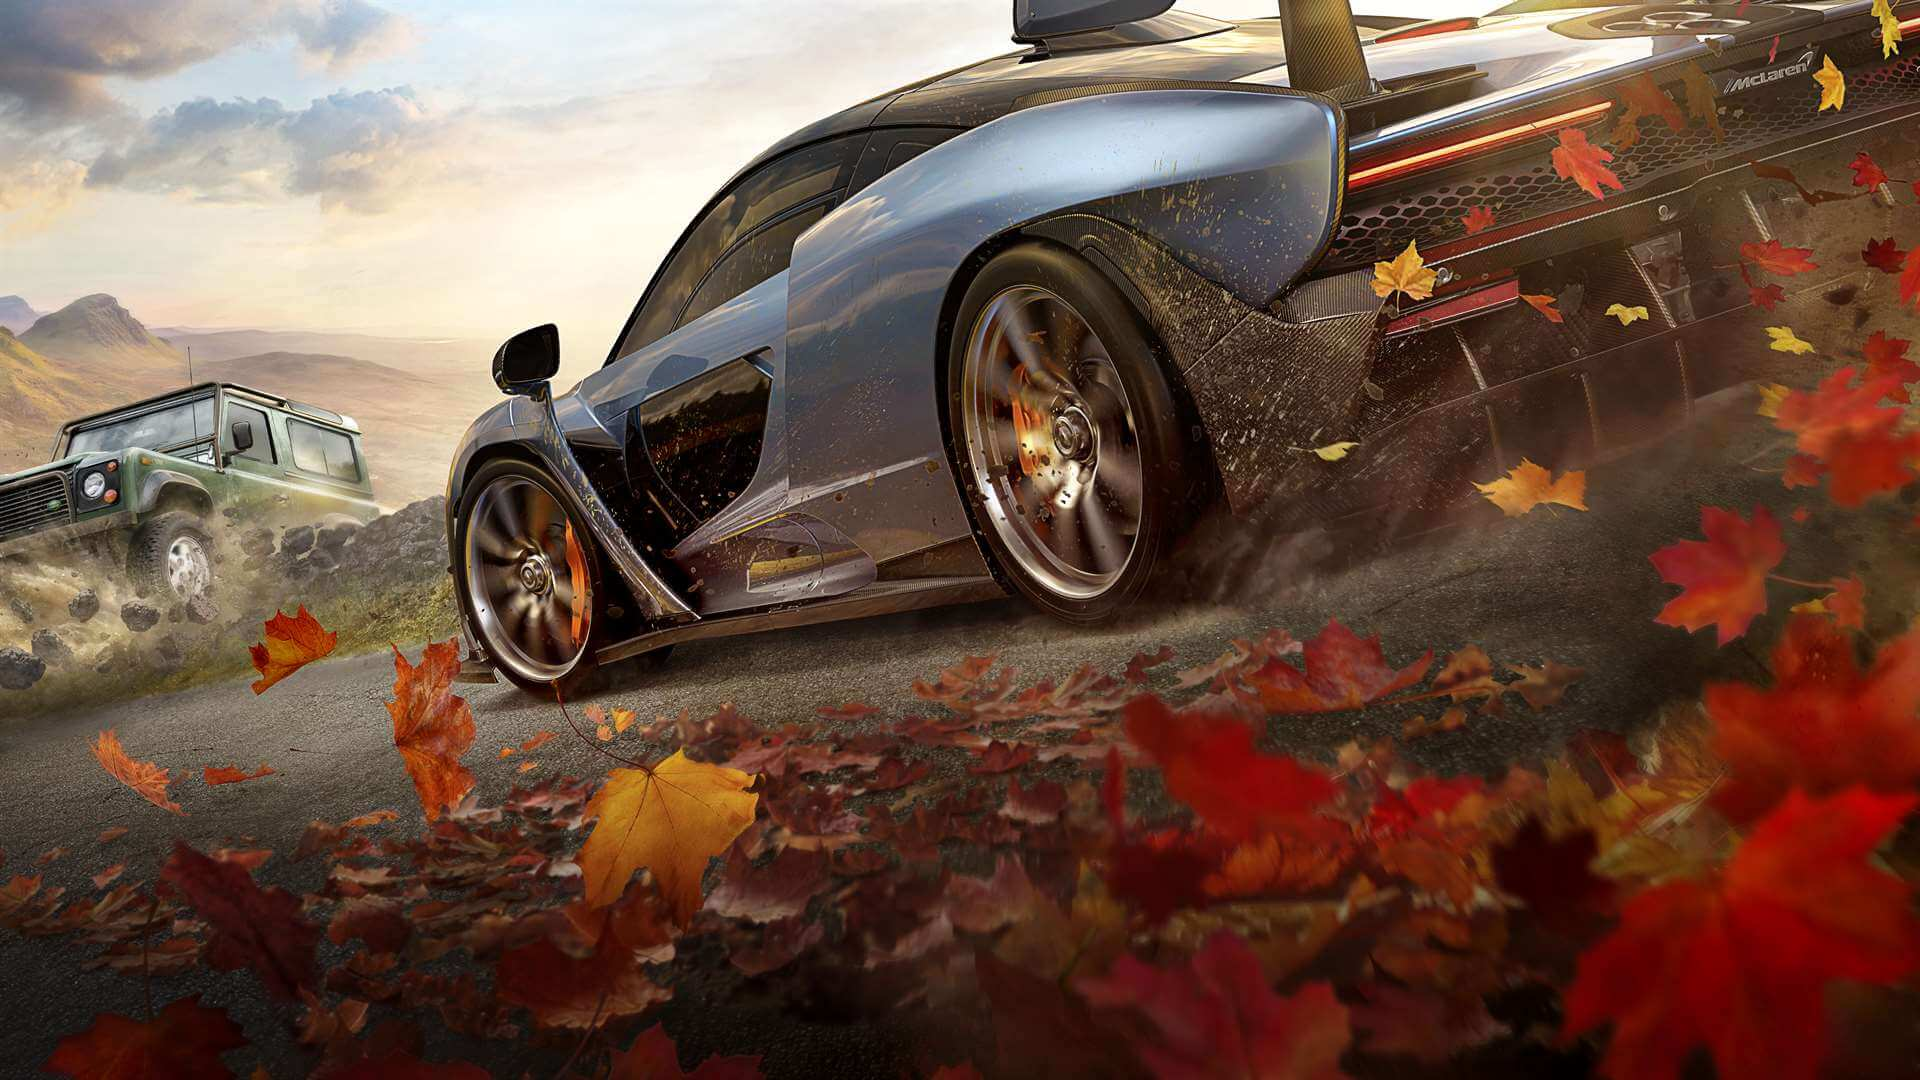 5 Things We Hate About Racing Games